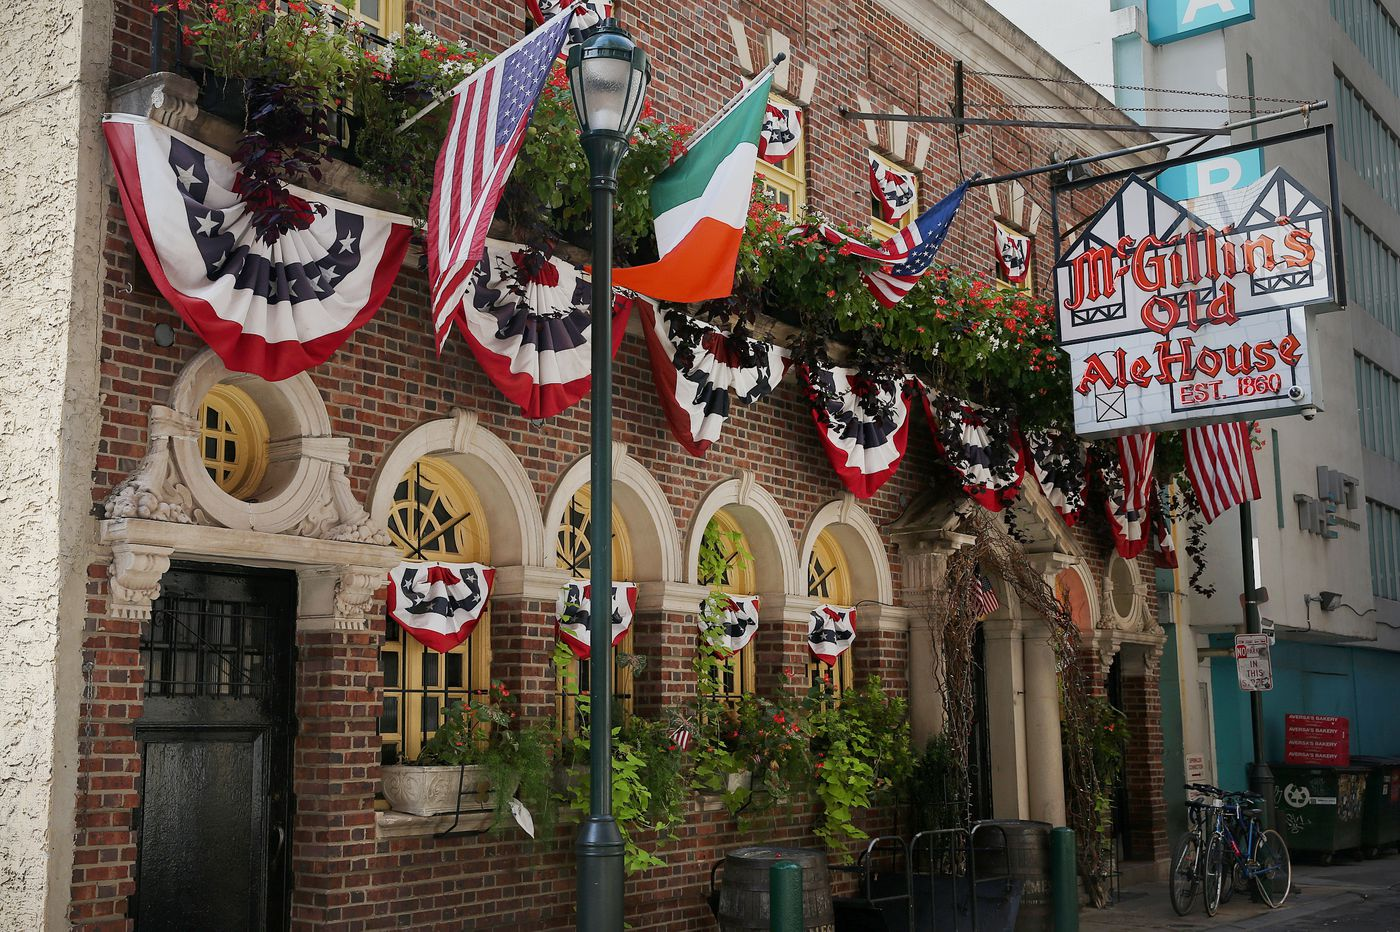 McGillin's pub will pay $100 to first five women who propose marriage on Leap Day